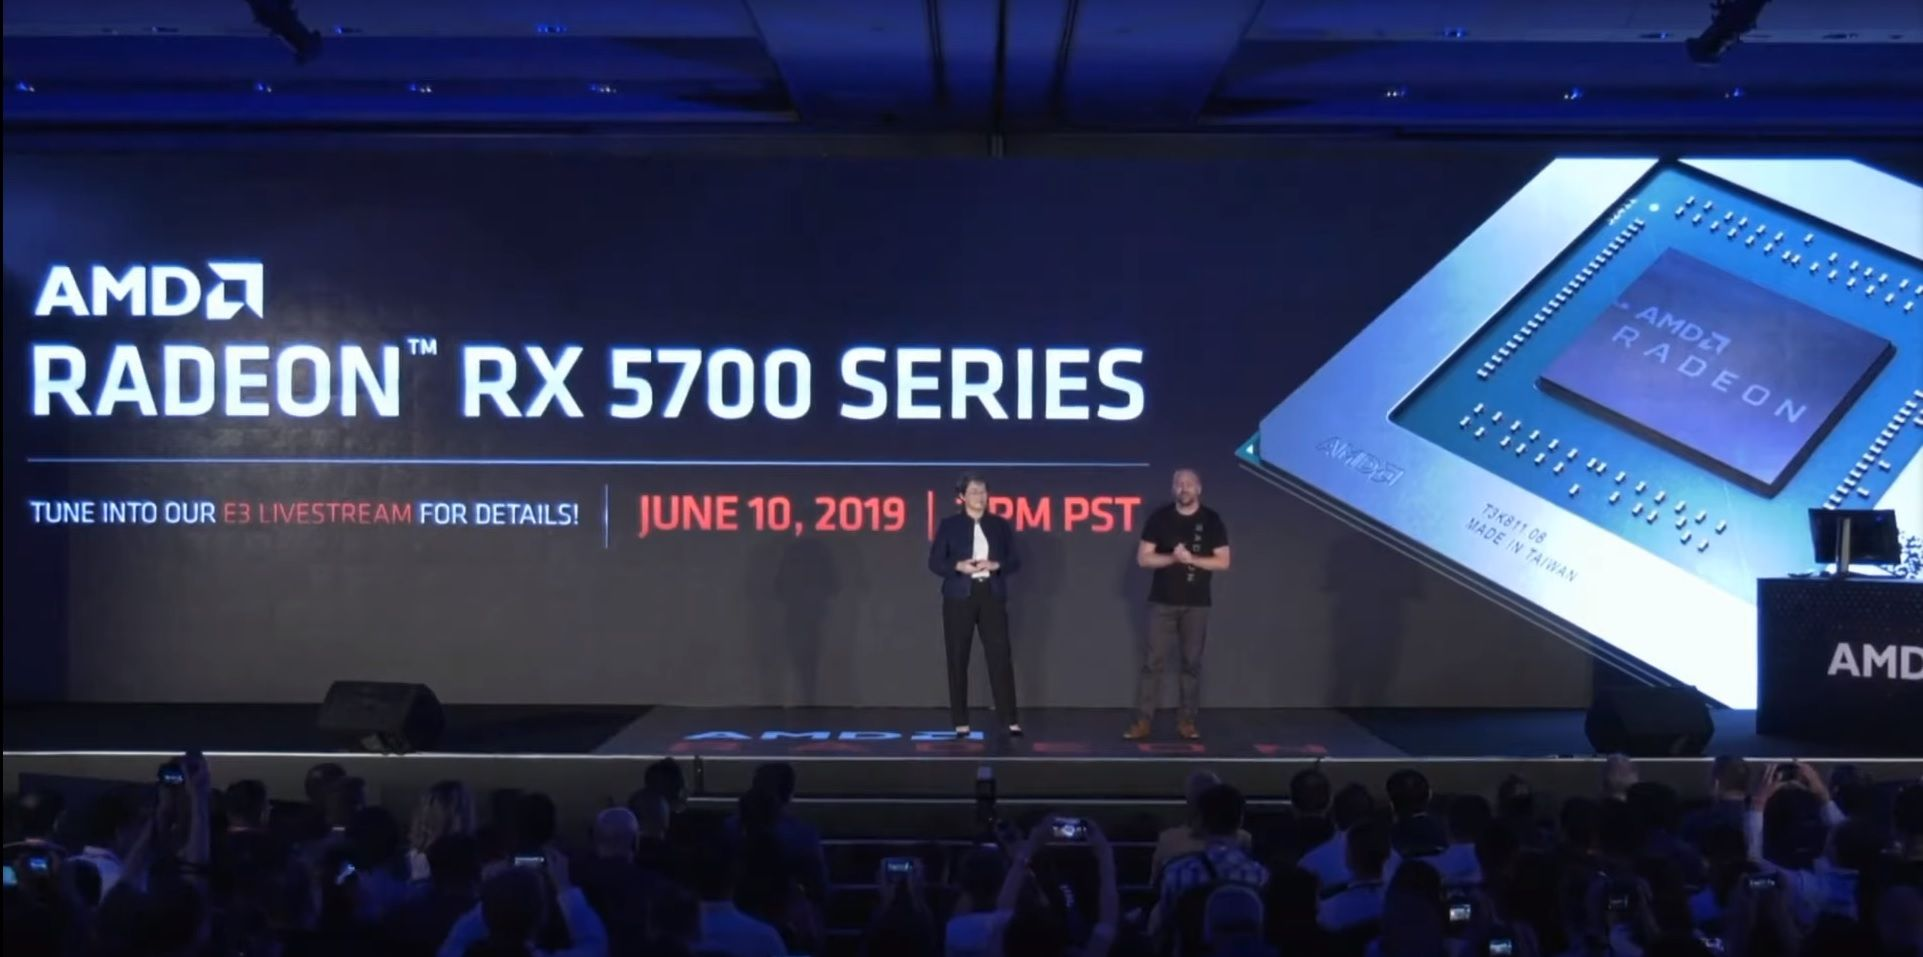 AMD's new Navi-based Radeon RX 5700 series graphics cards